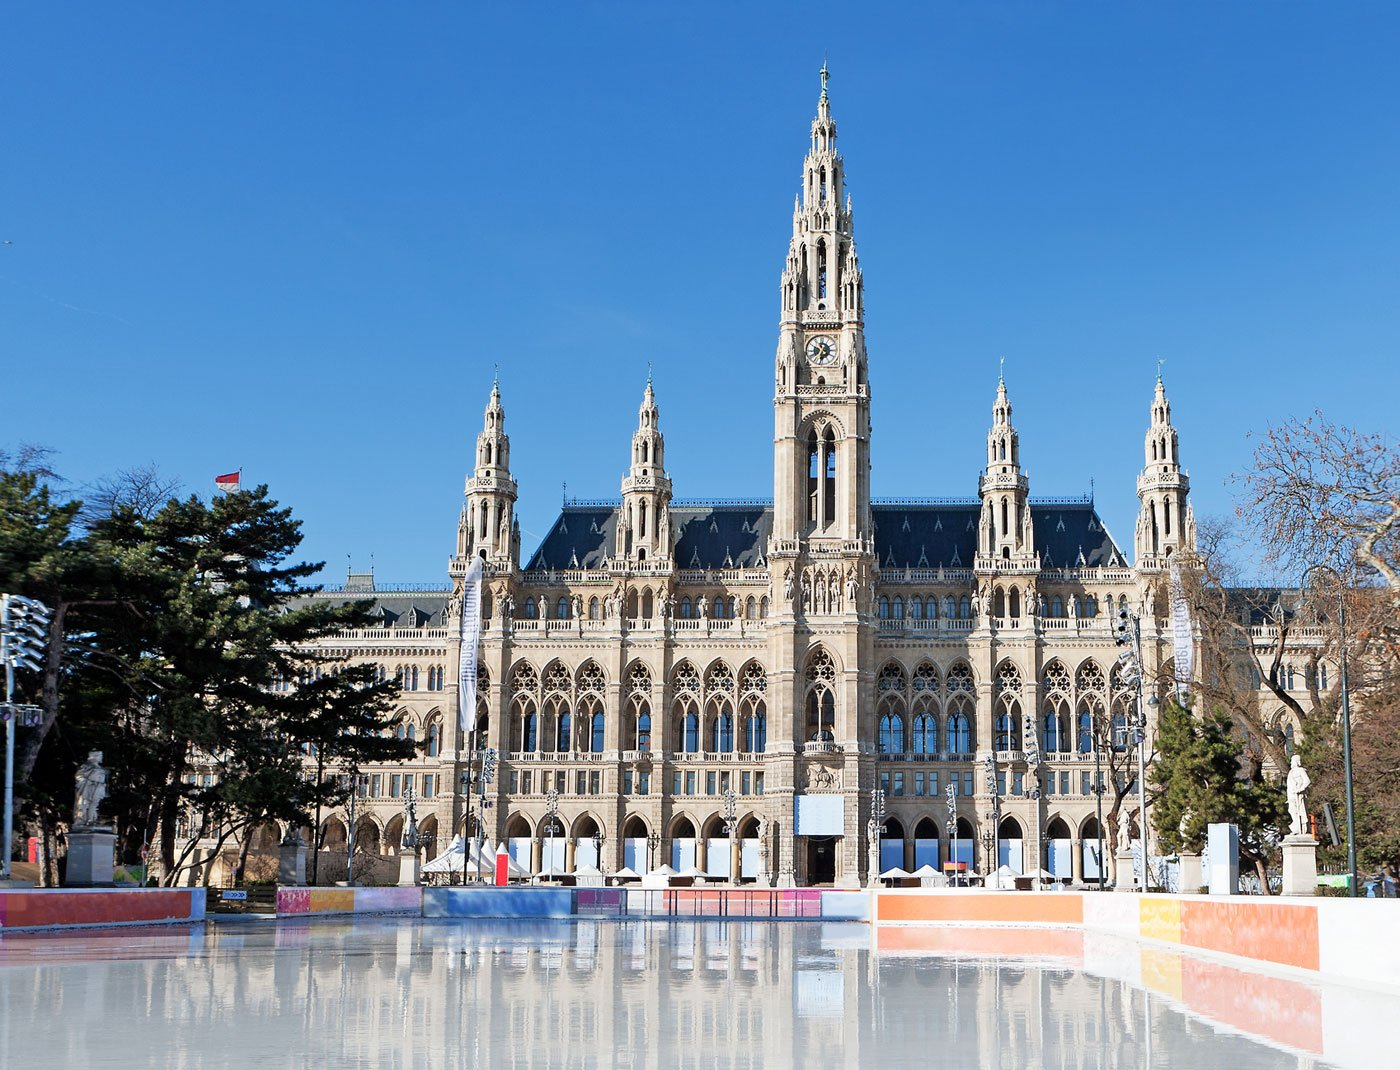 At the Vienna Ice Dream, colored lights illuminate the magnificent Rathaus and skaters are accompanied by waltz music and a festive atmosphere. The ice rink opens from December 27 to March 12, and is a spectacularly popular and romantic way to spend an evening.